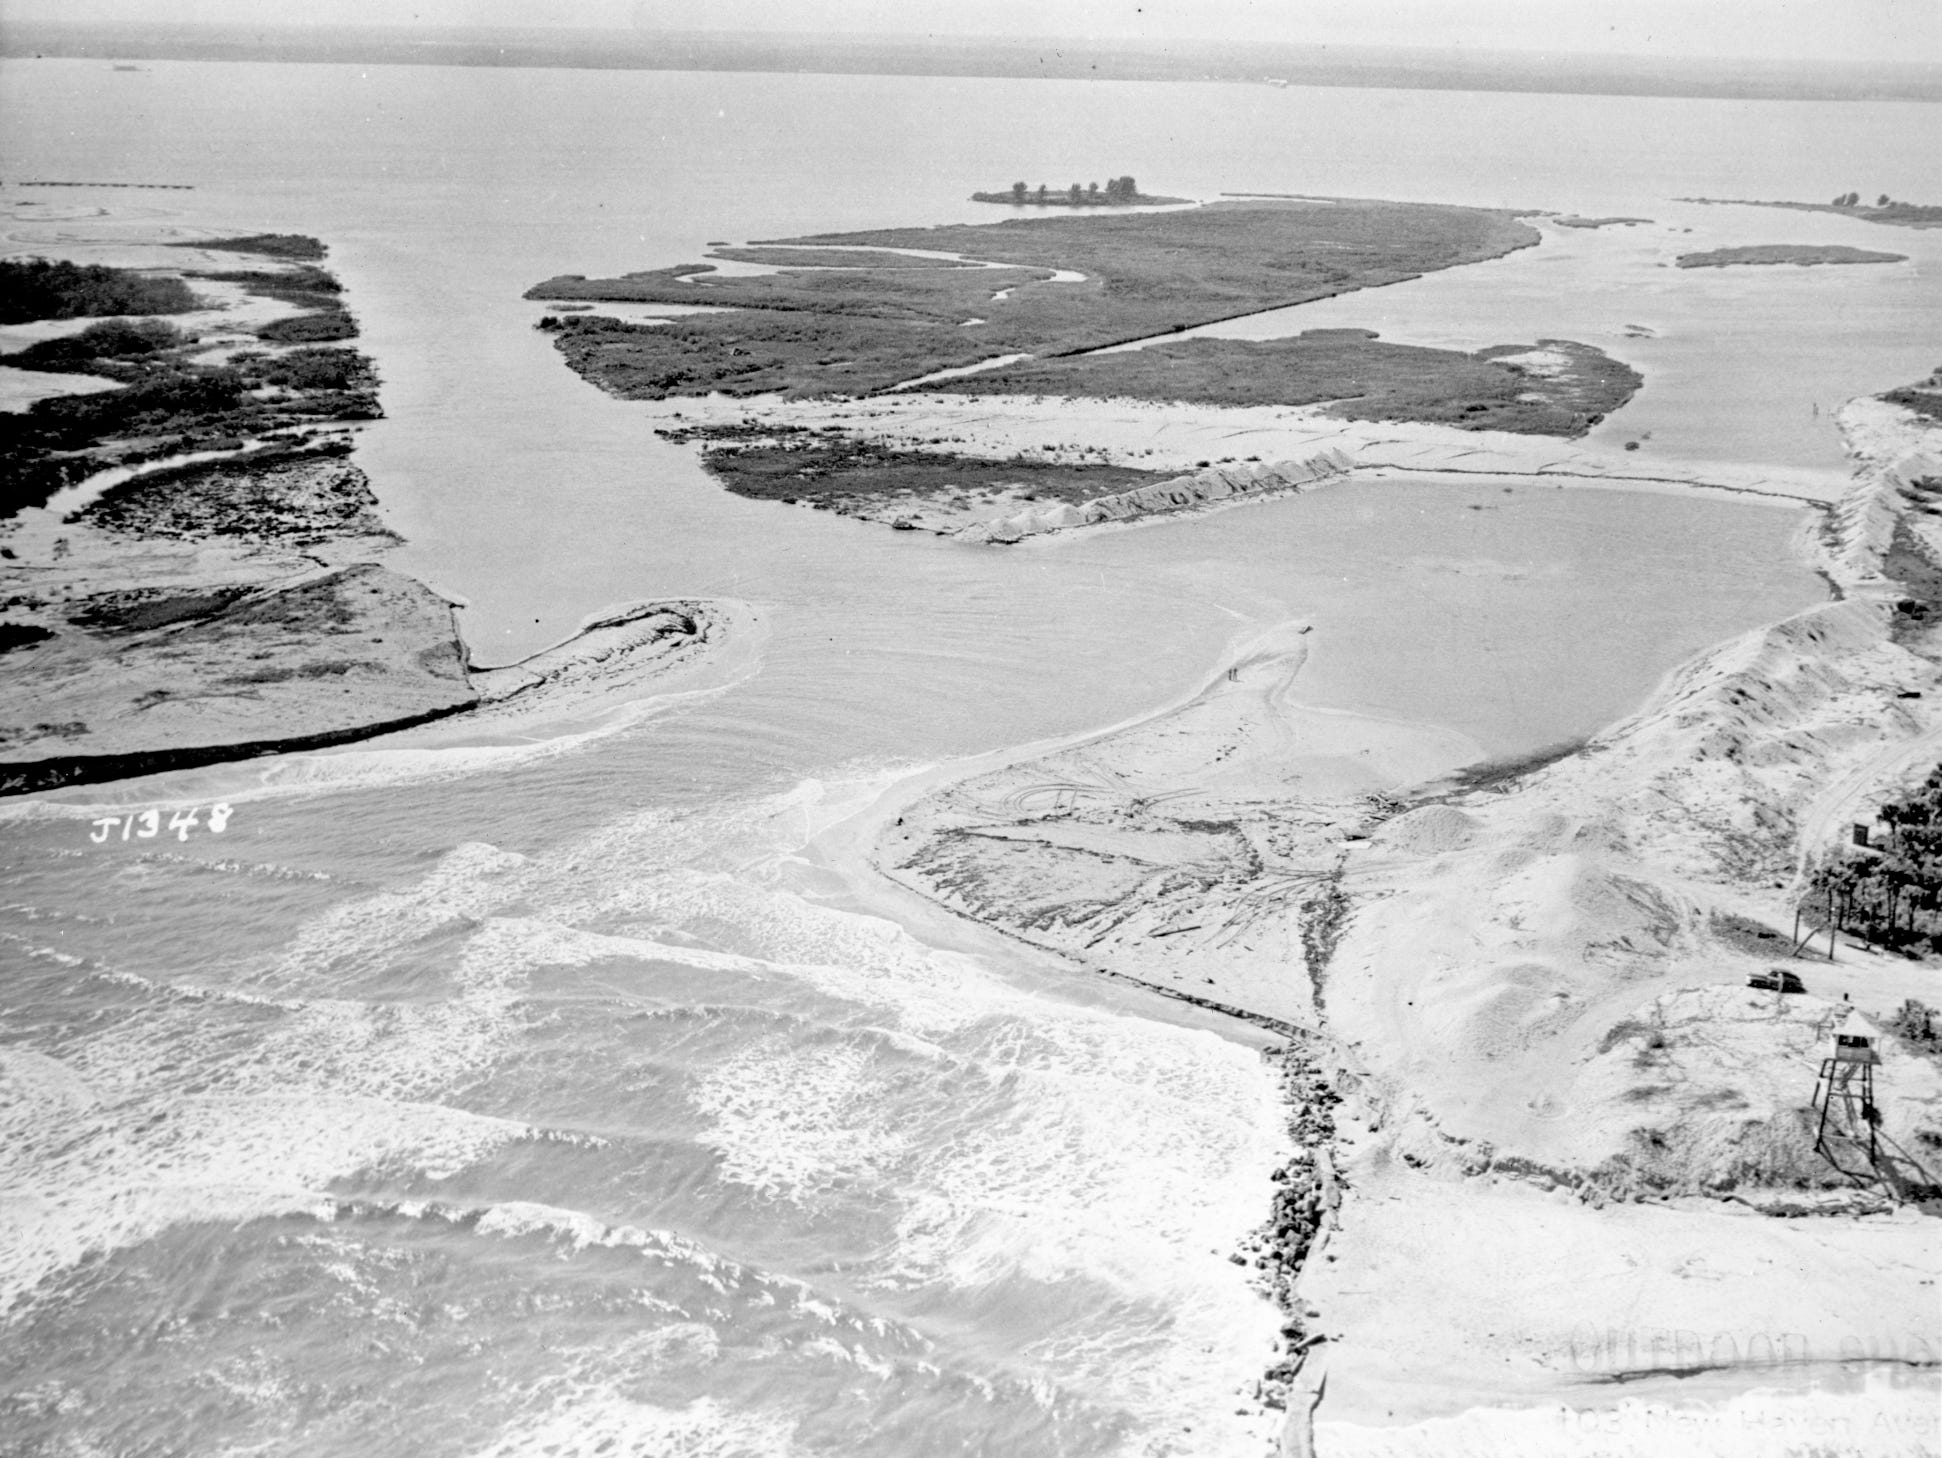 Aerial view of the open Sebastian Inlet in November 1948, showing the WWII spotting tower that was manned by citizen patrols during the war to scan the coast for German U-boats ( lower right hand corner).